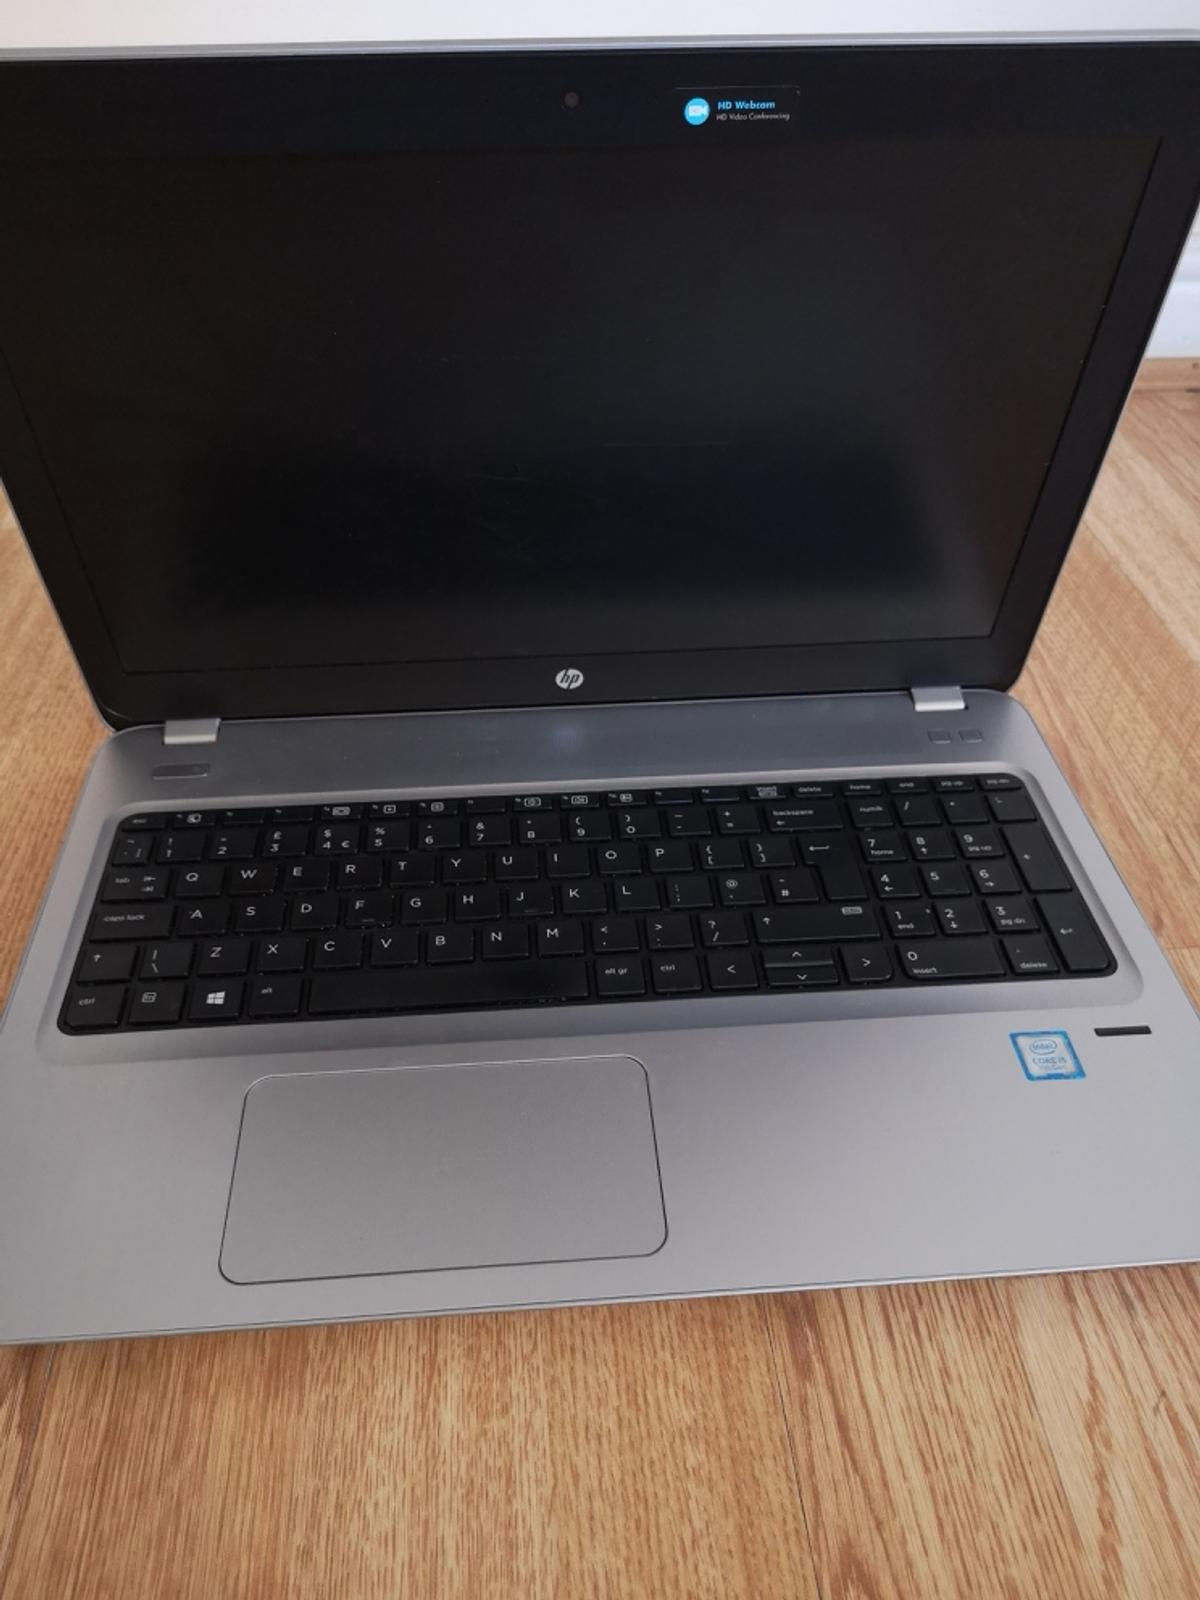 HP ProBook 450 G4 Core i5-7200 Laptop in RM9 Dagenham for